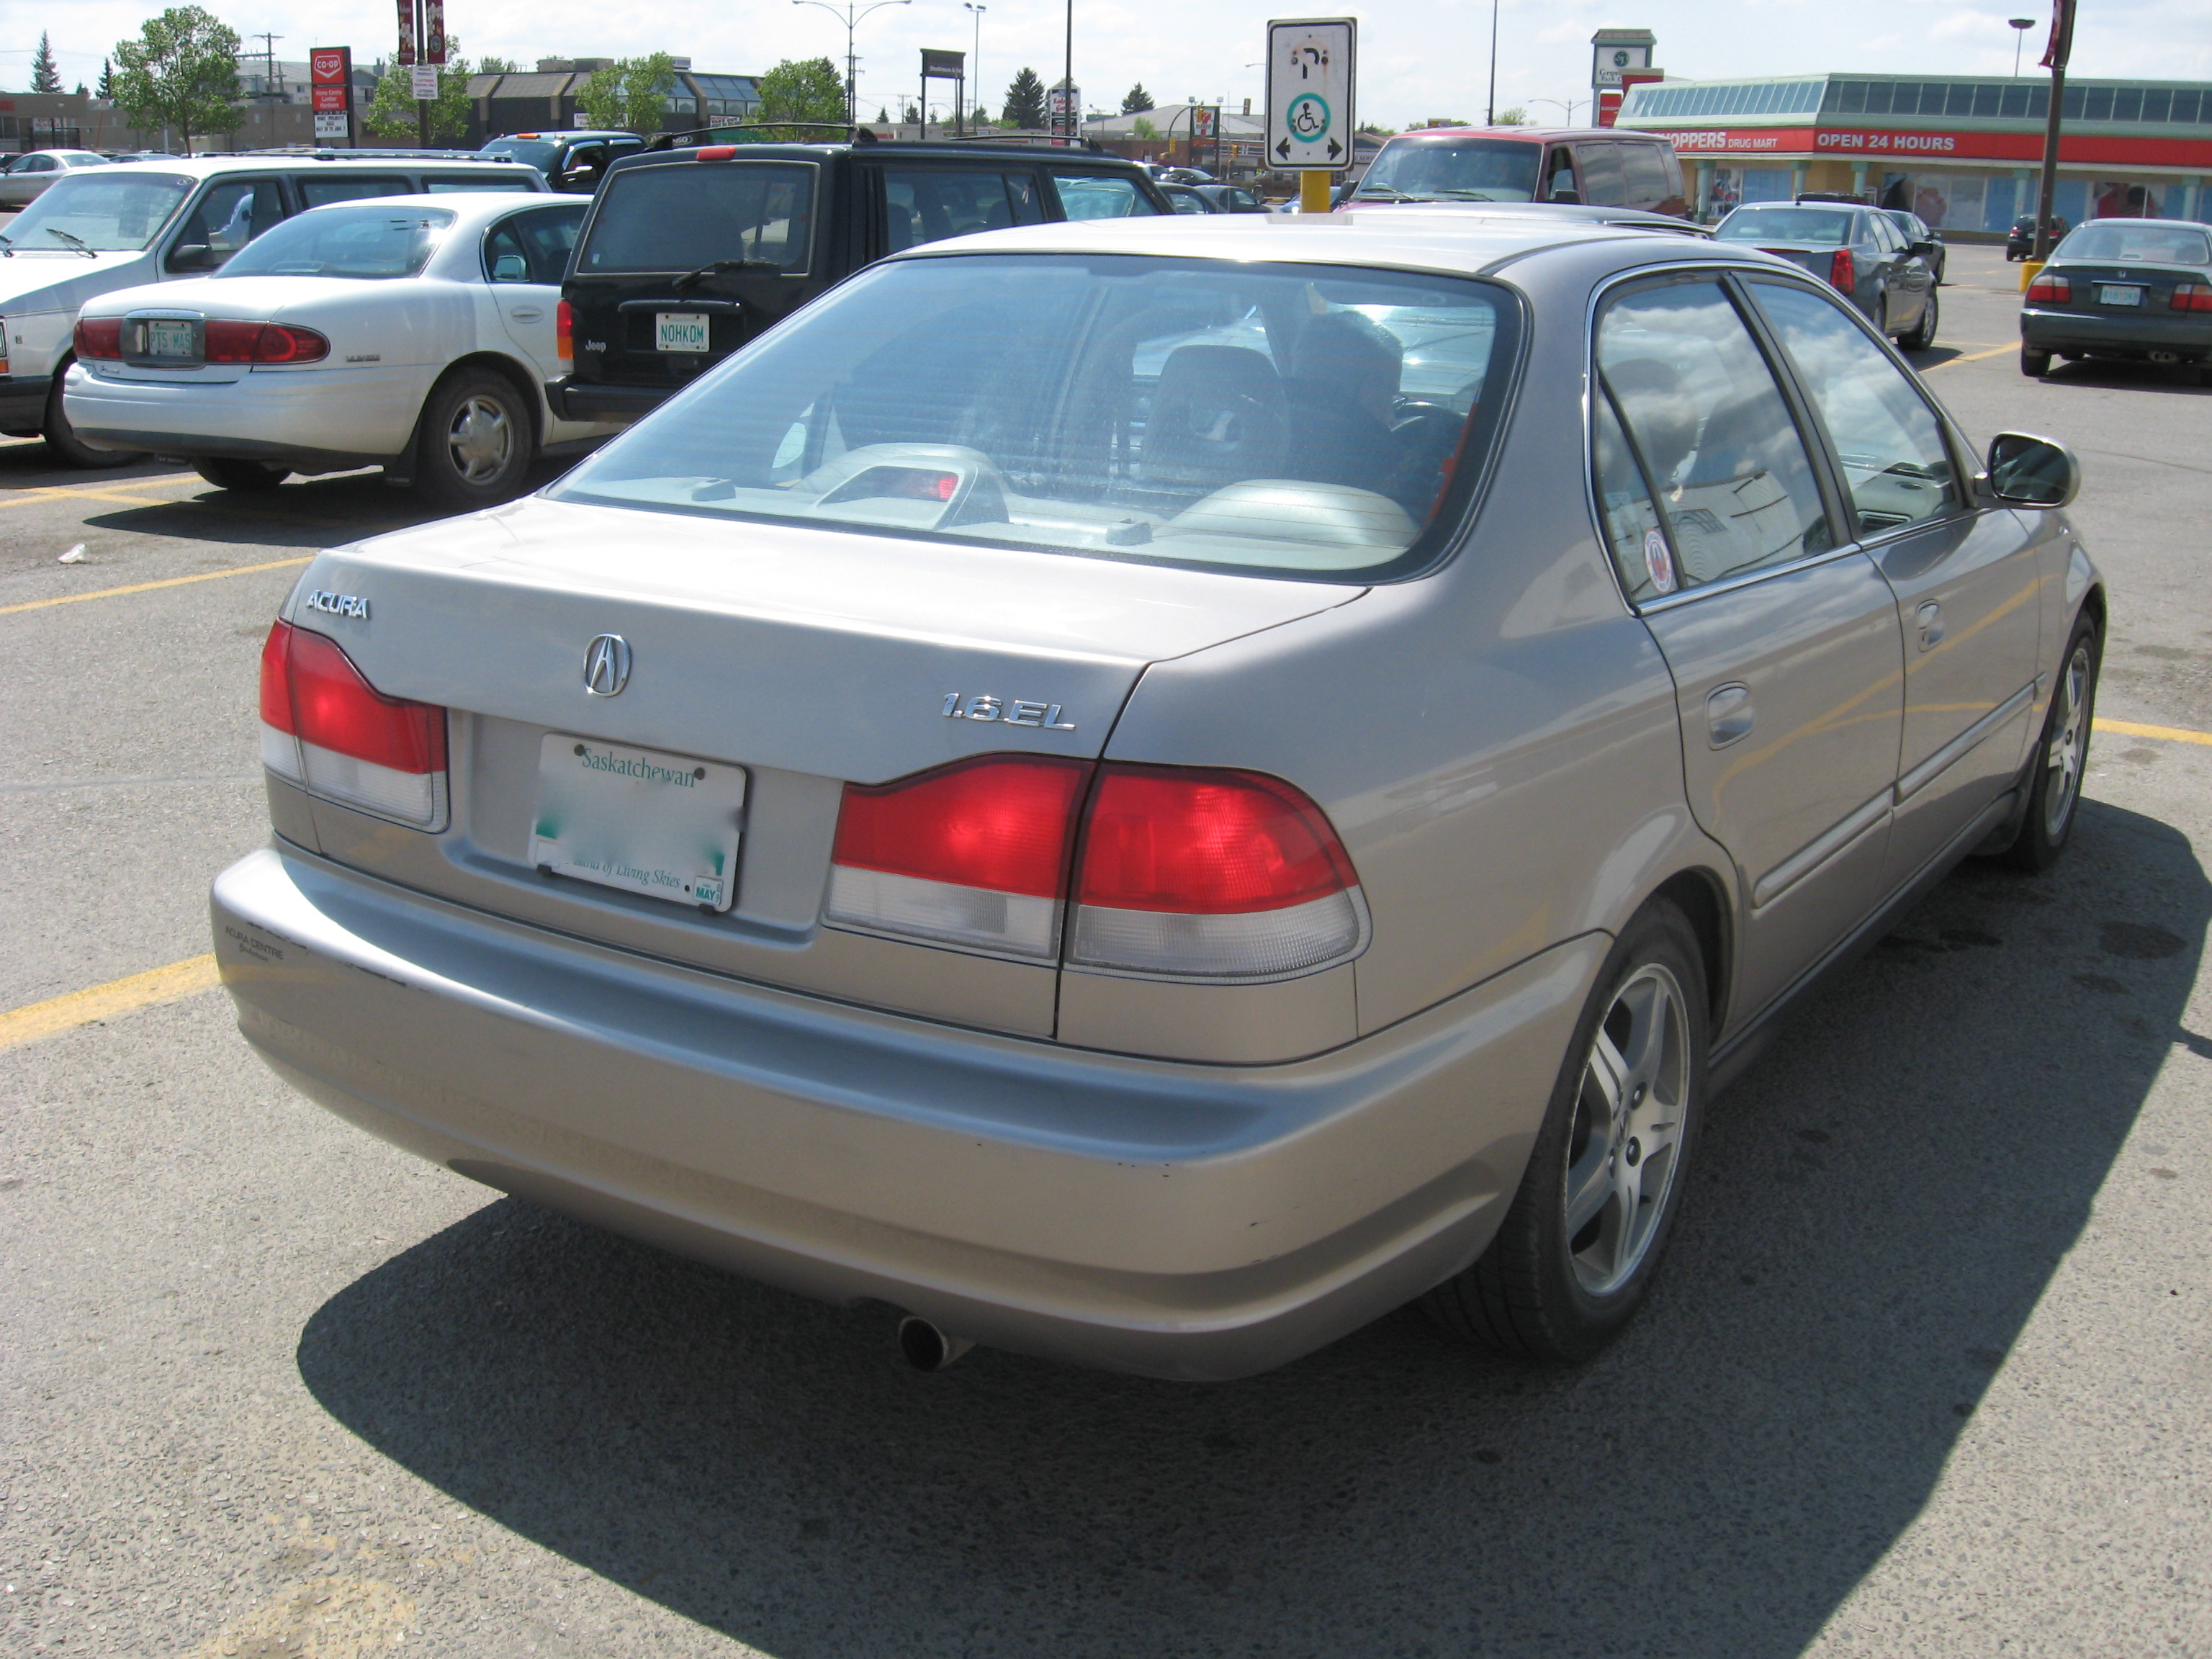 File:'00 acura 1.6 el.JPG - Wikimedia Commons